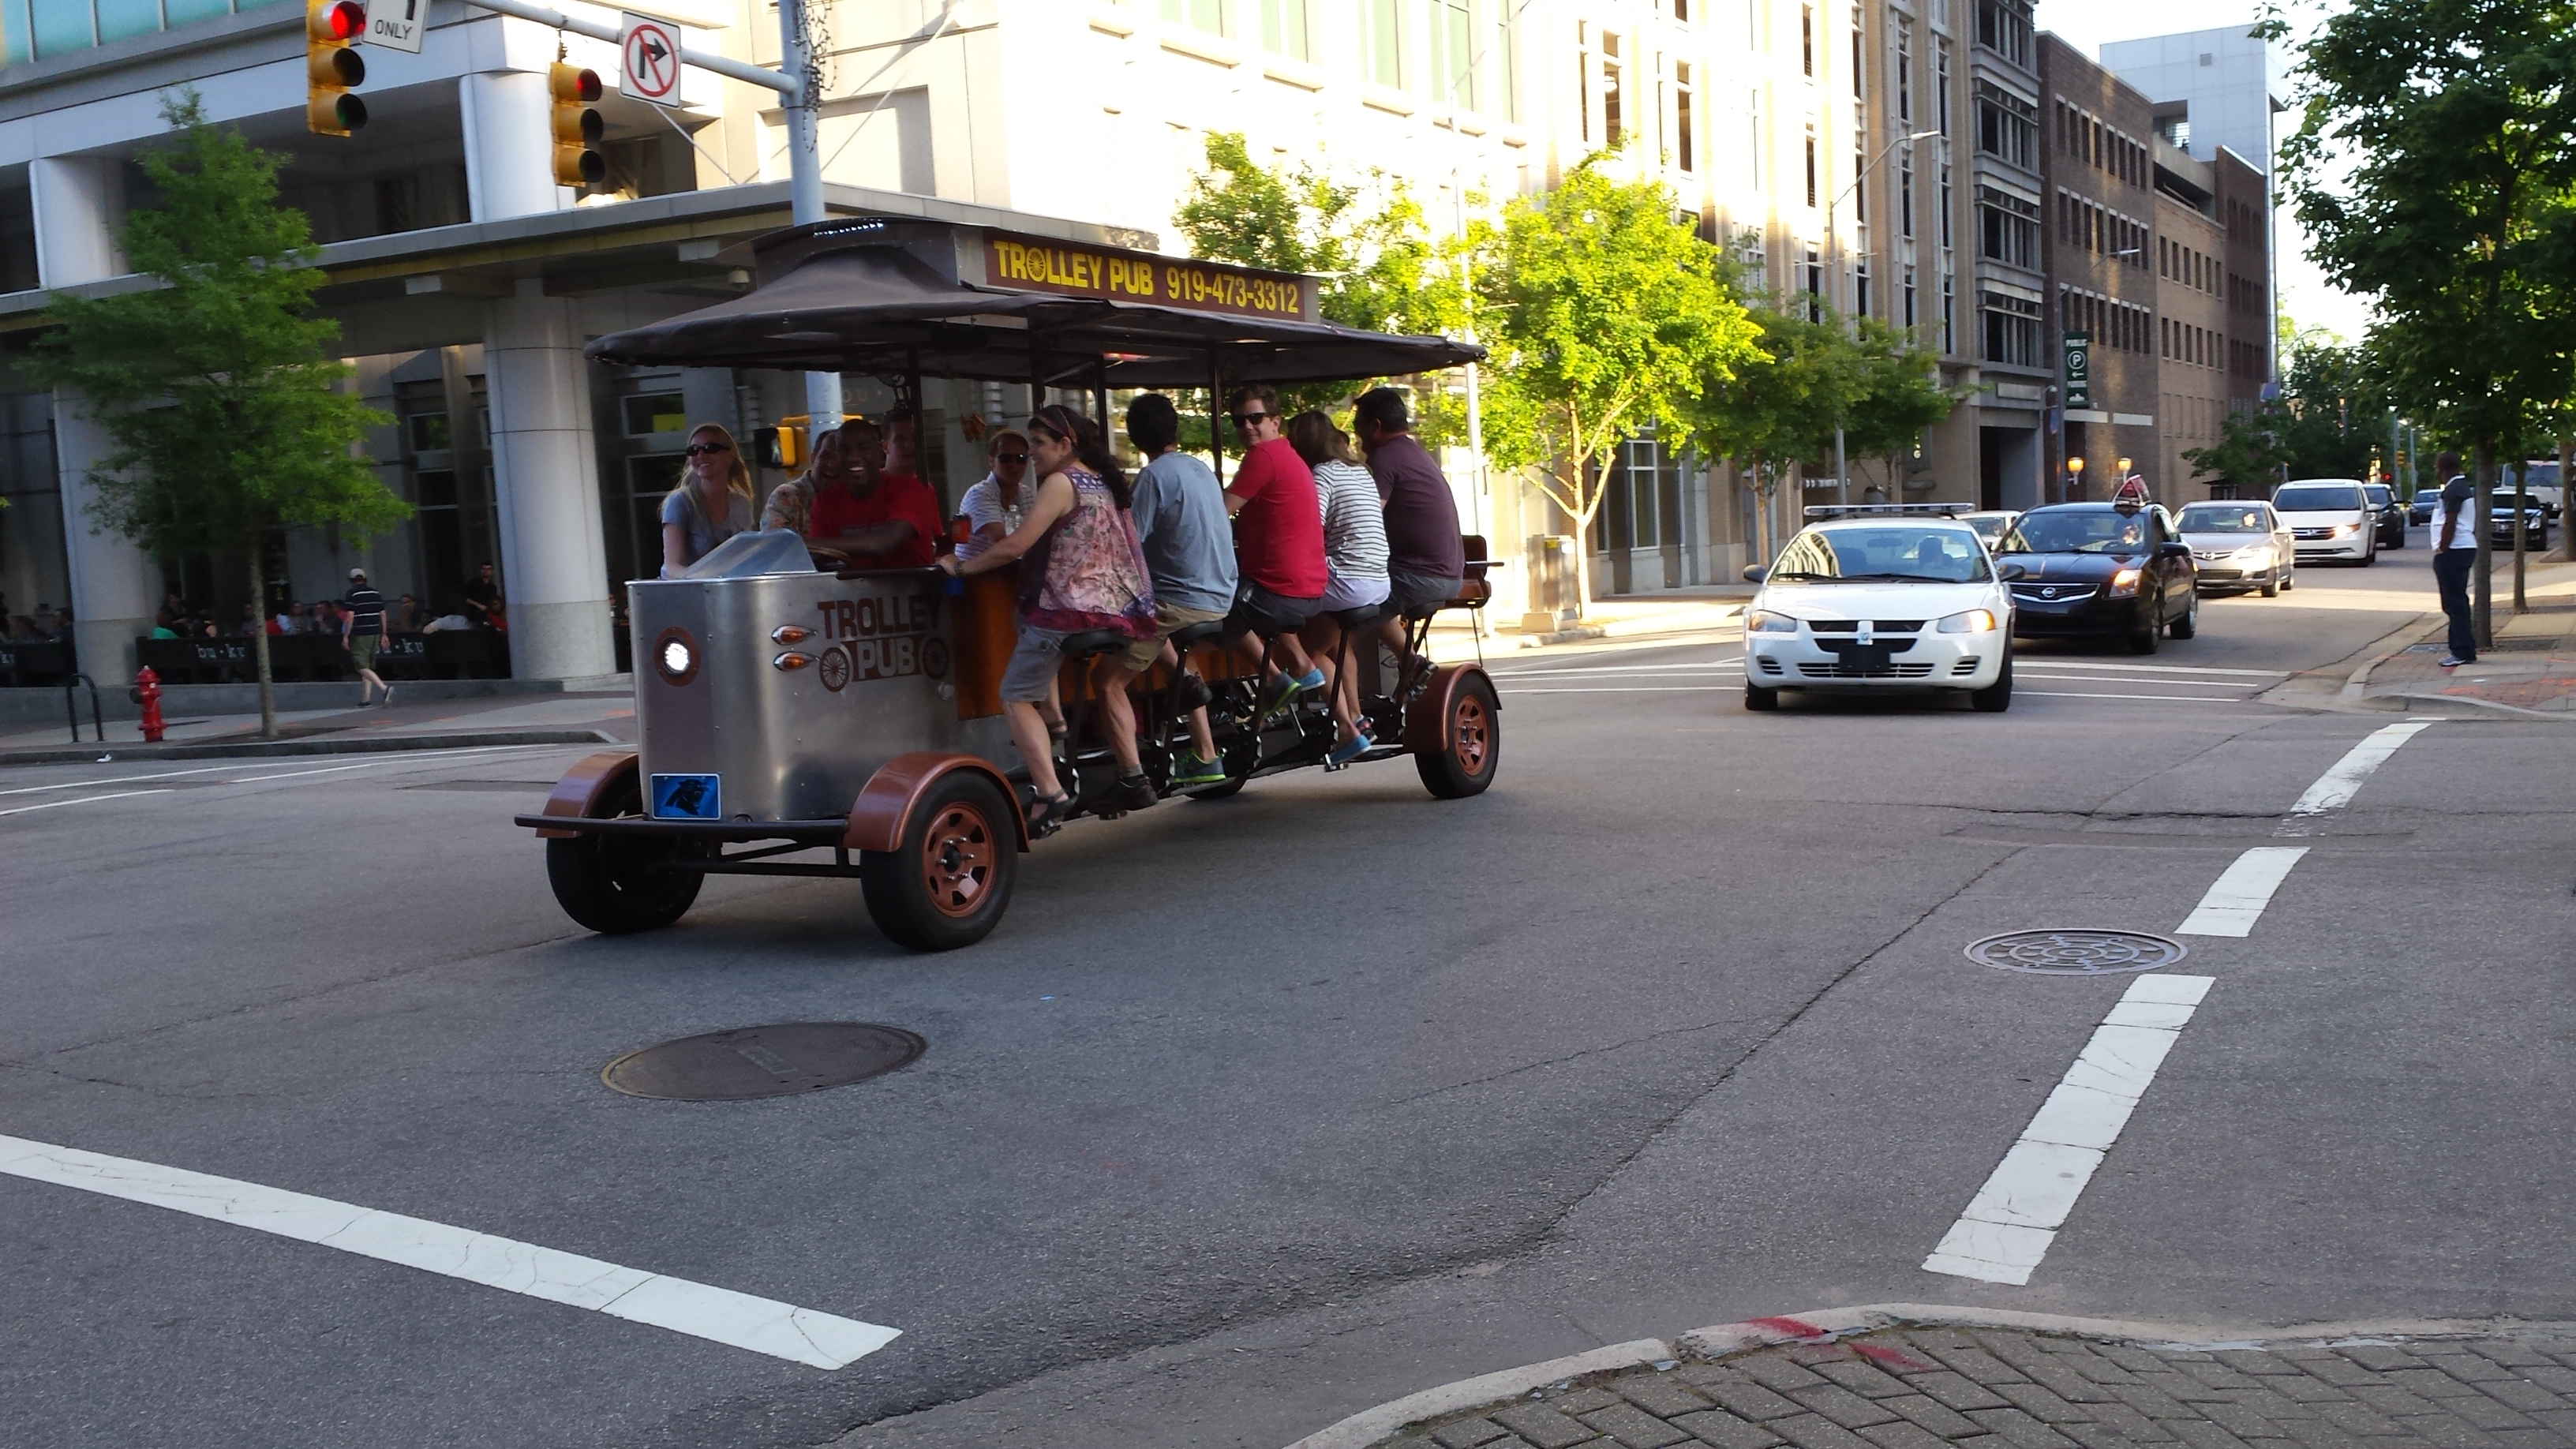 Beer pedal bike in Raleigh